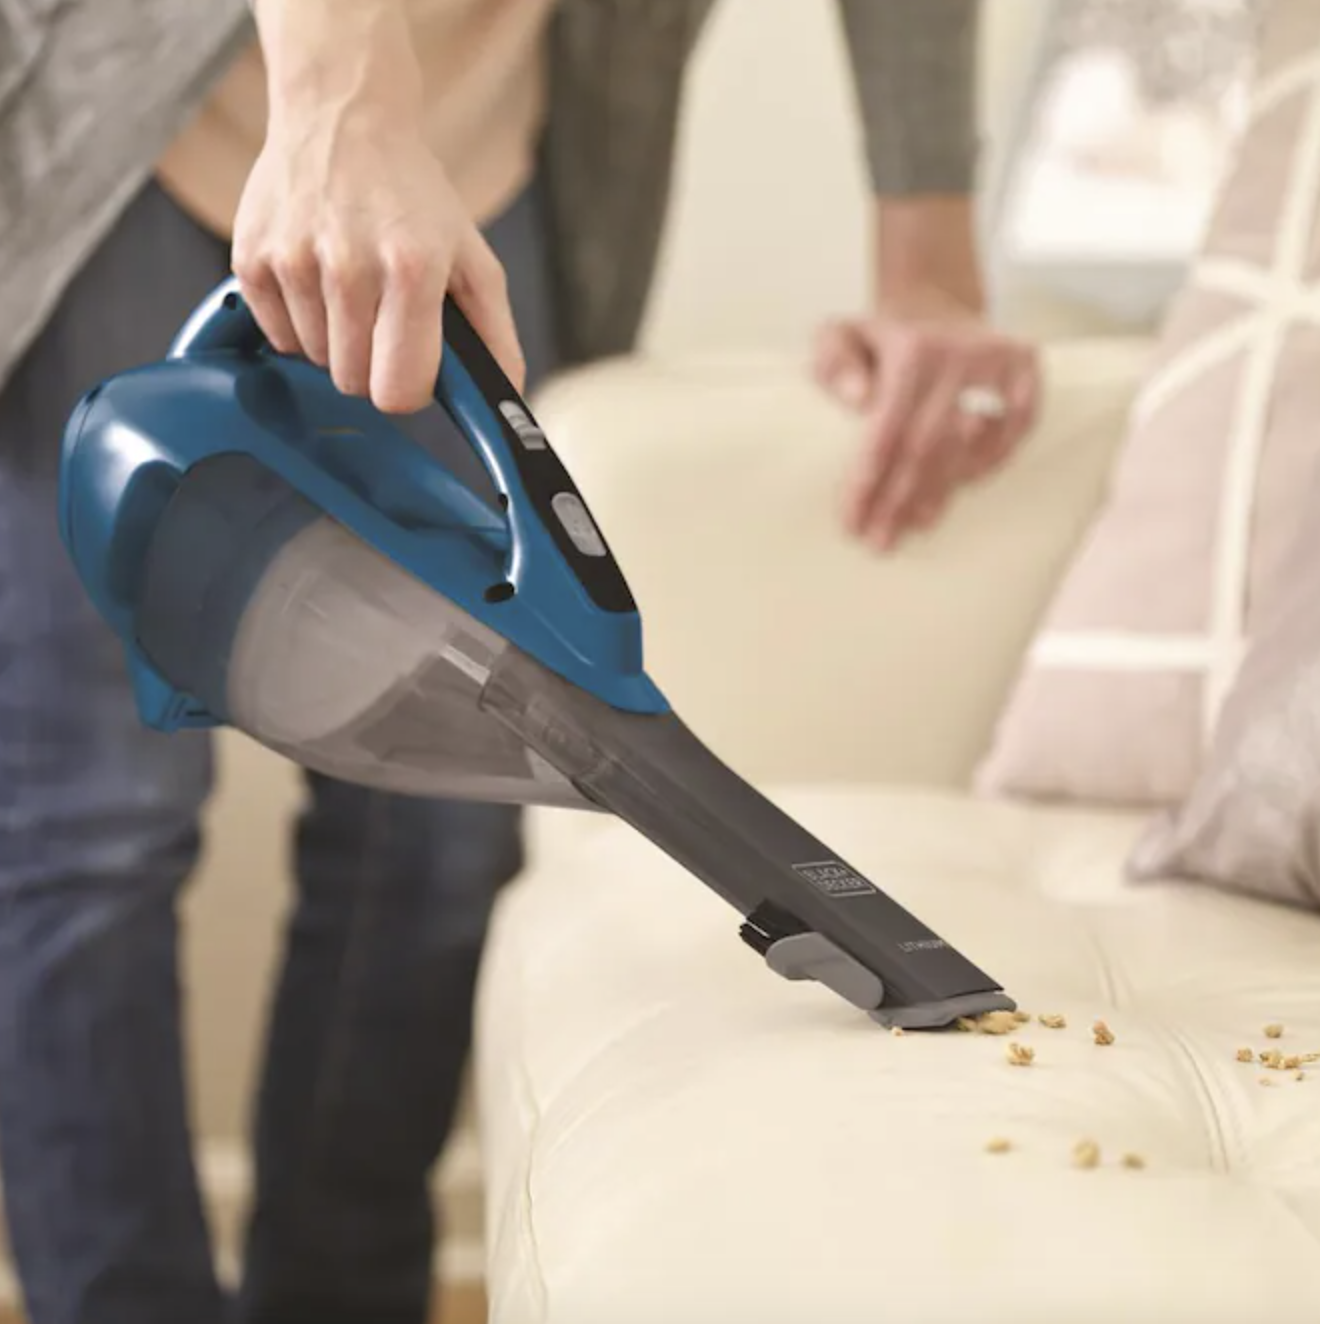 Model using Black and Decker handheld vacuum on couch